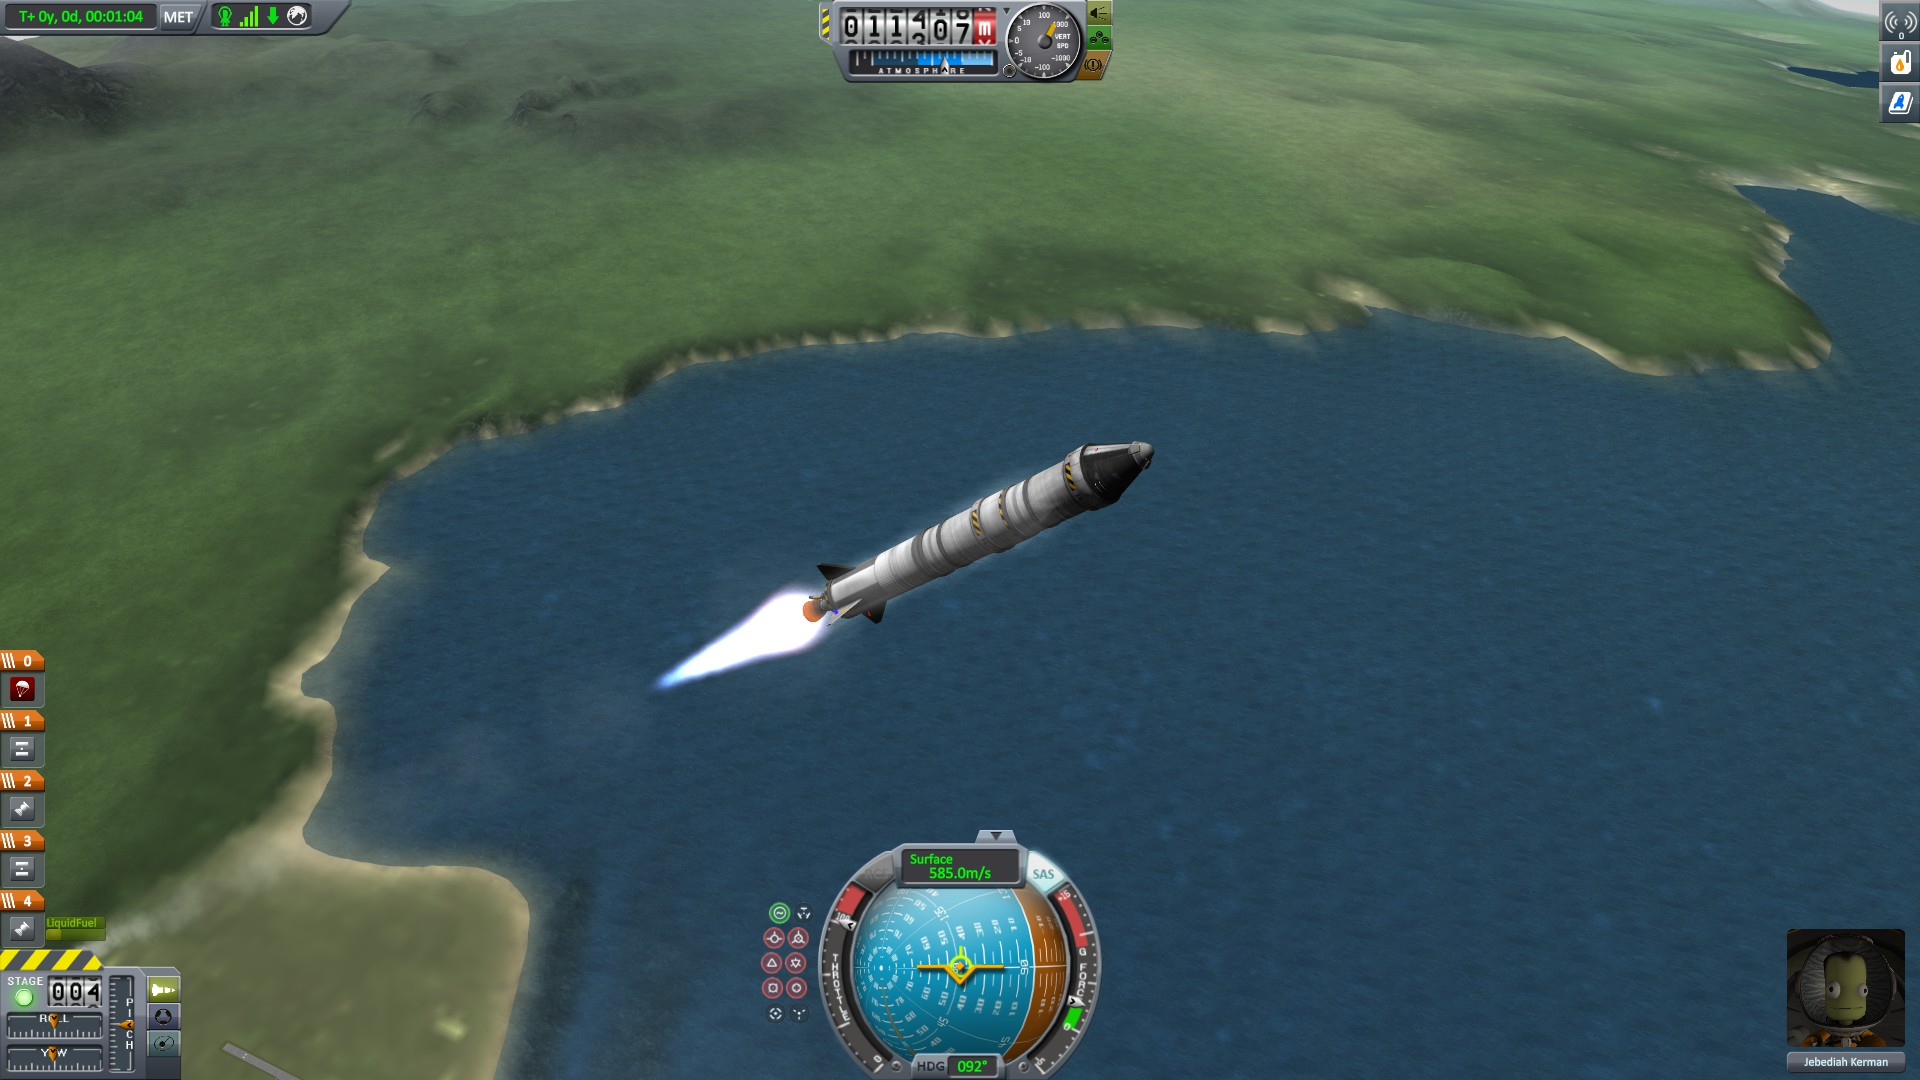 Kerbal Space Program: How To Get Into Stable Orbit | AllGamers